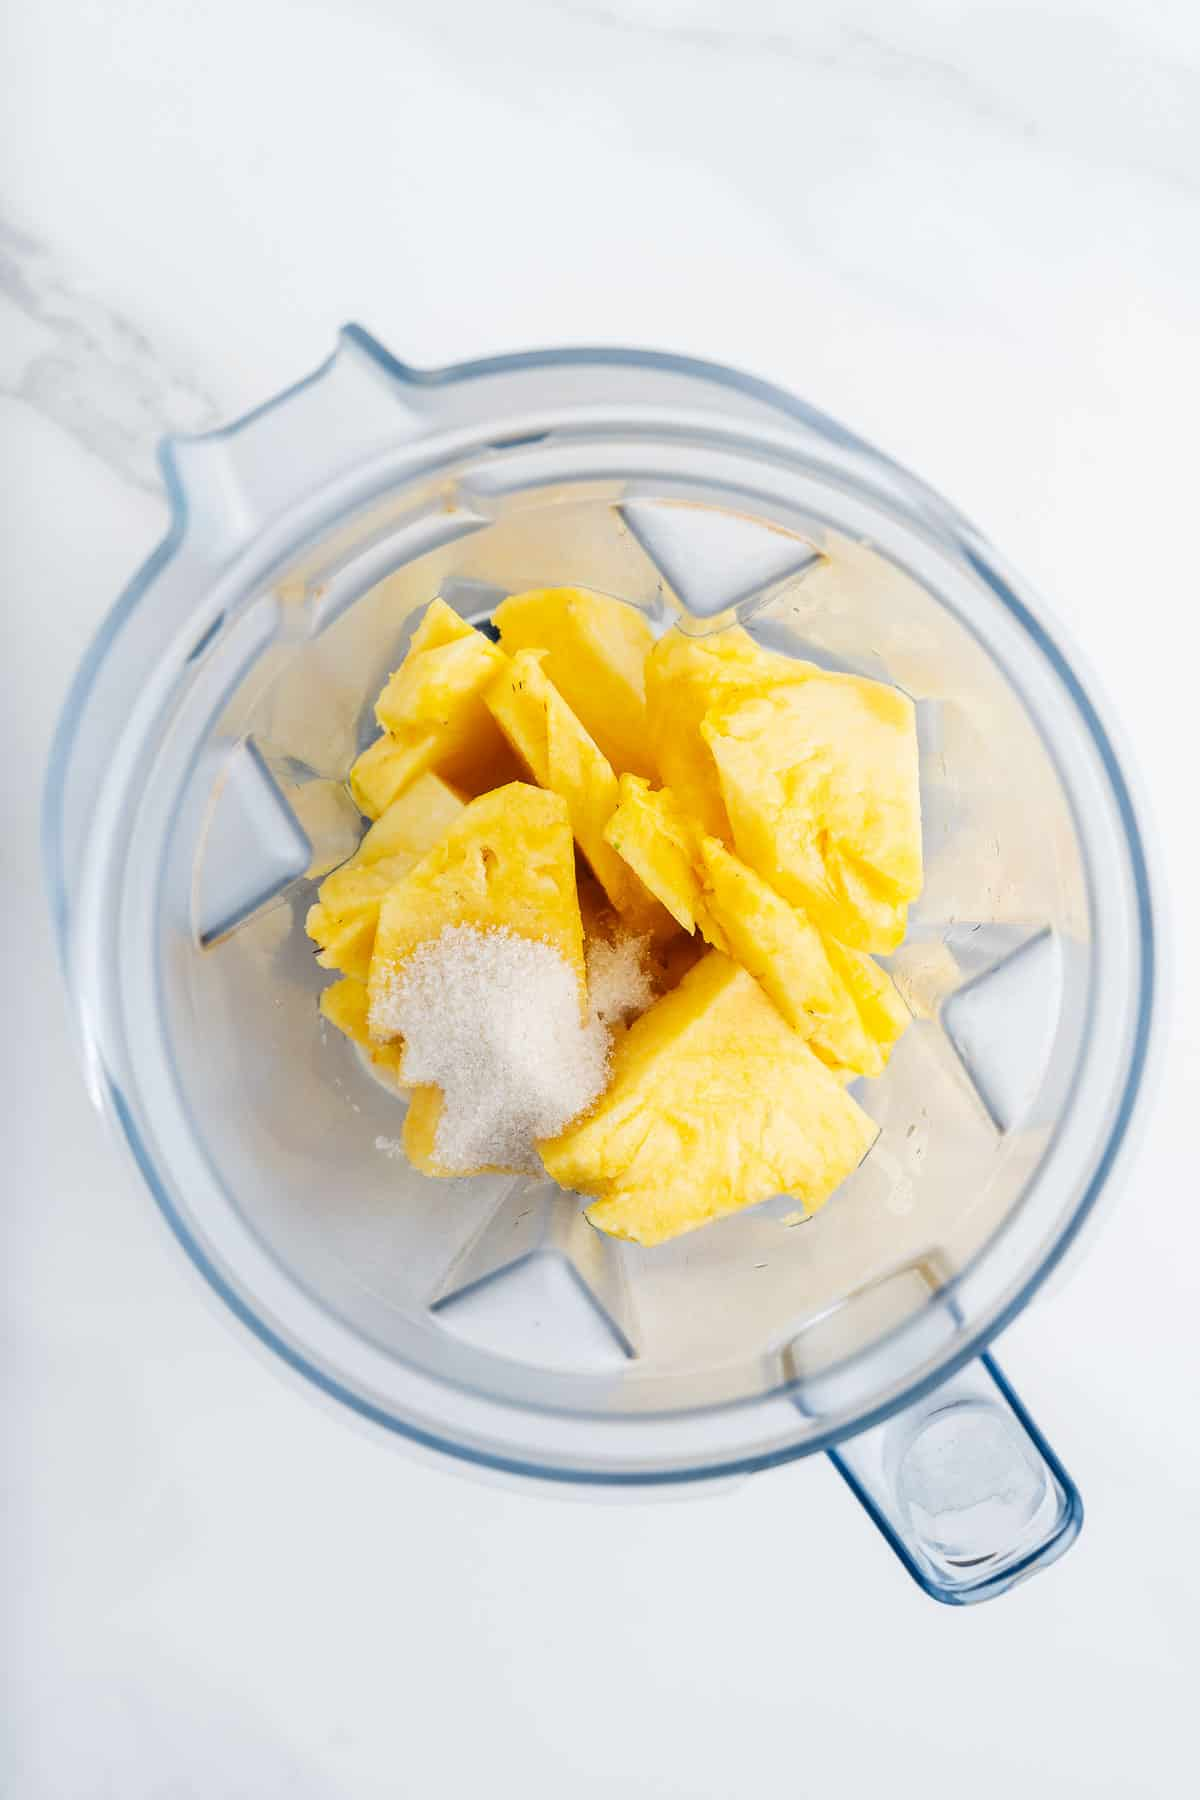 Pineapple, Cane Sugar, and Water in a Blender